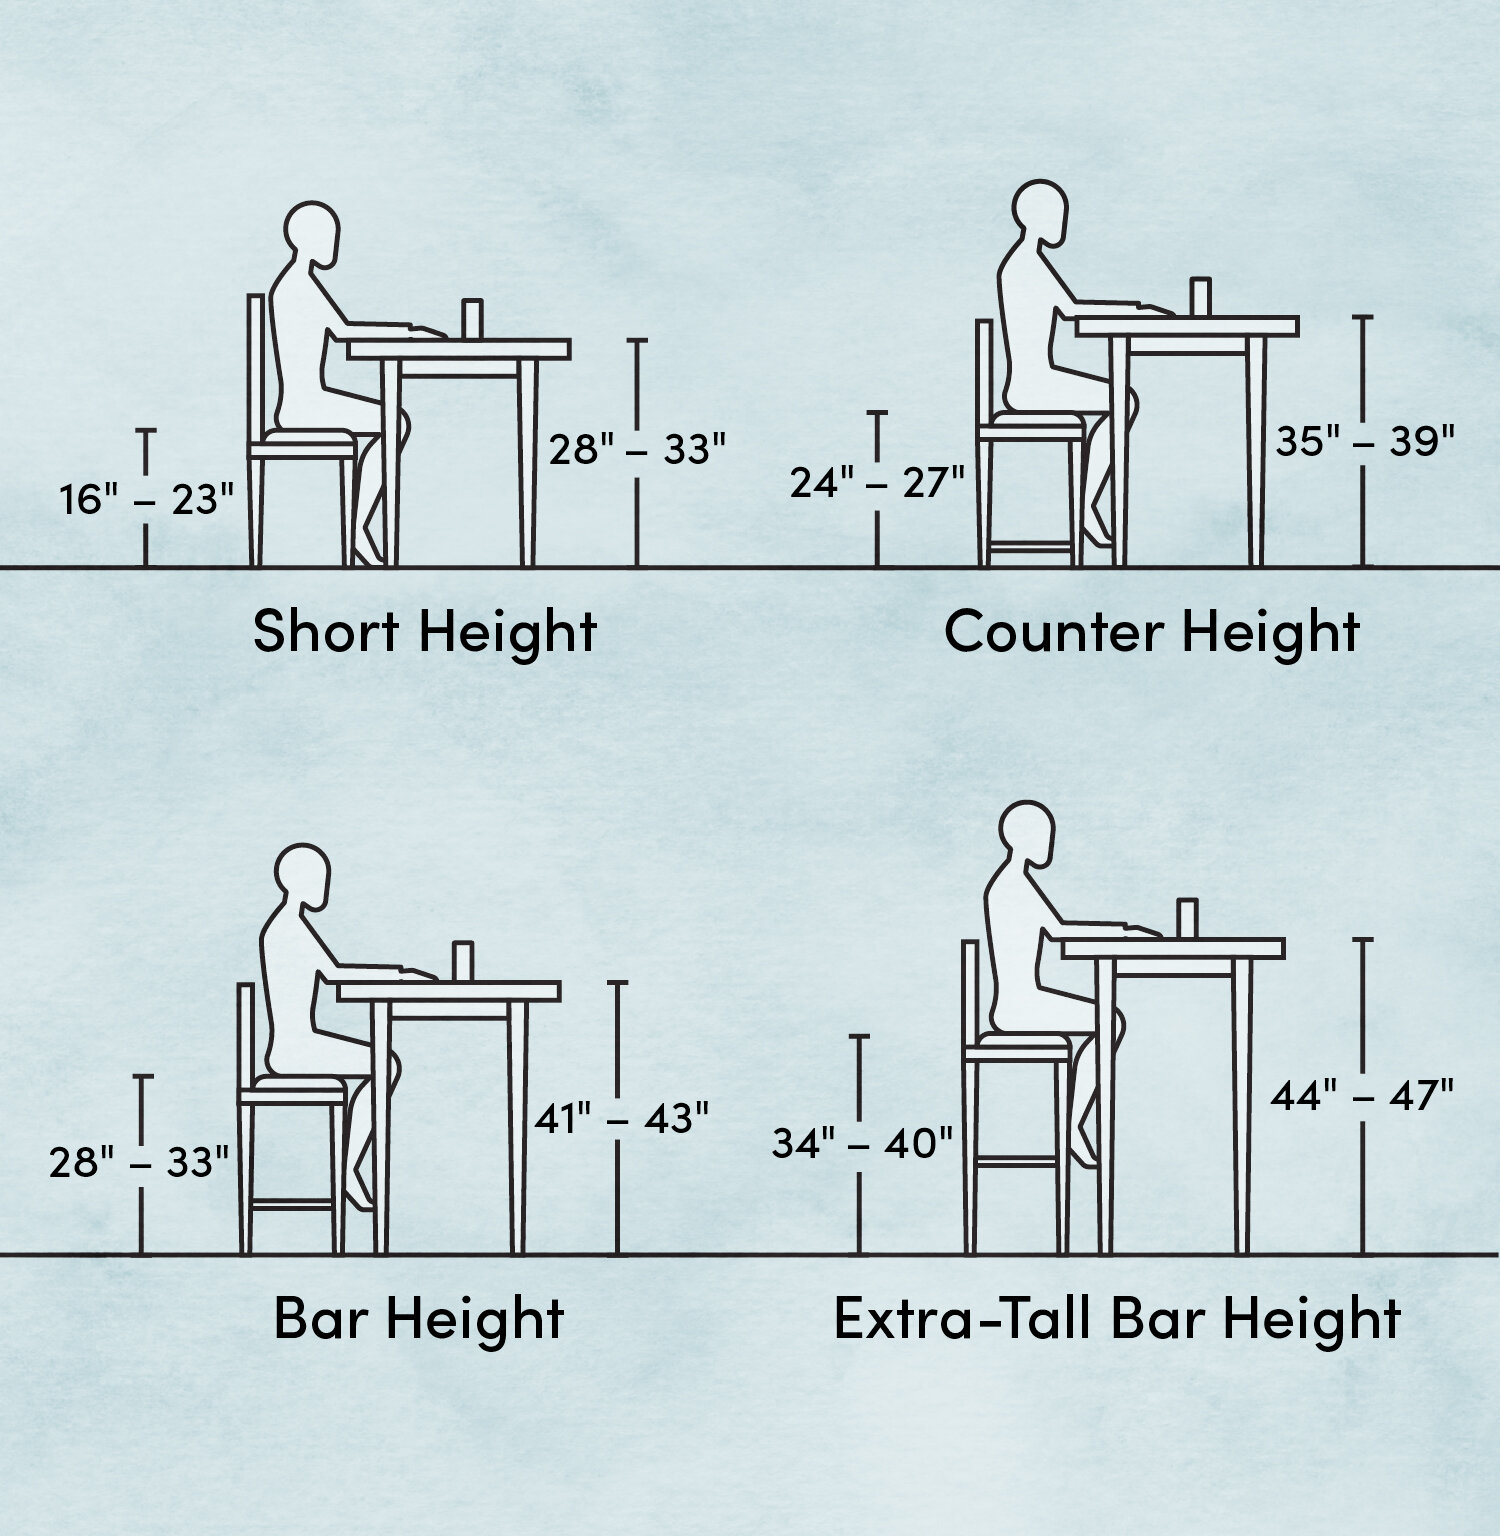 Admirable Bar Stool Dimensions How To Choose The Right Ones Wayfair Andrewgaddart Wooden Chair Designs For Living Room Andrewgaddartcom